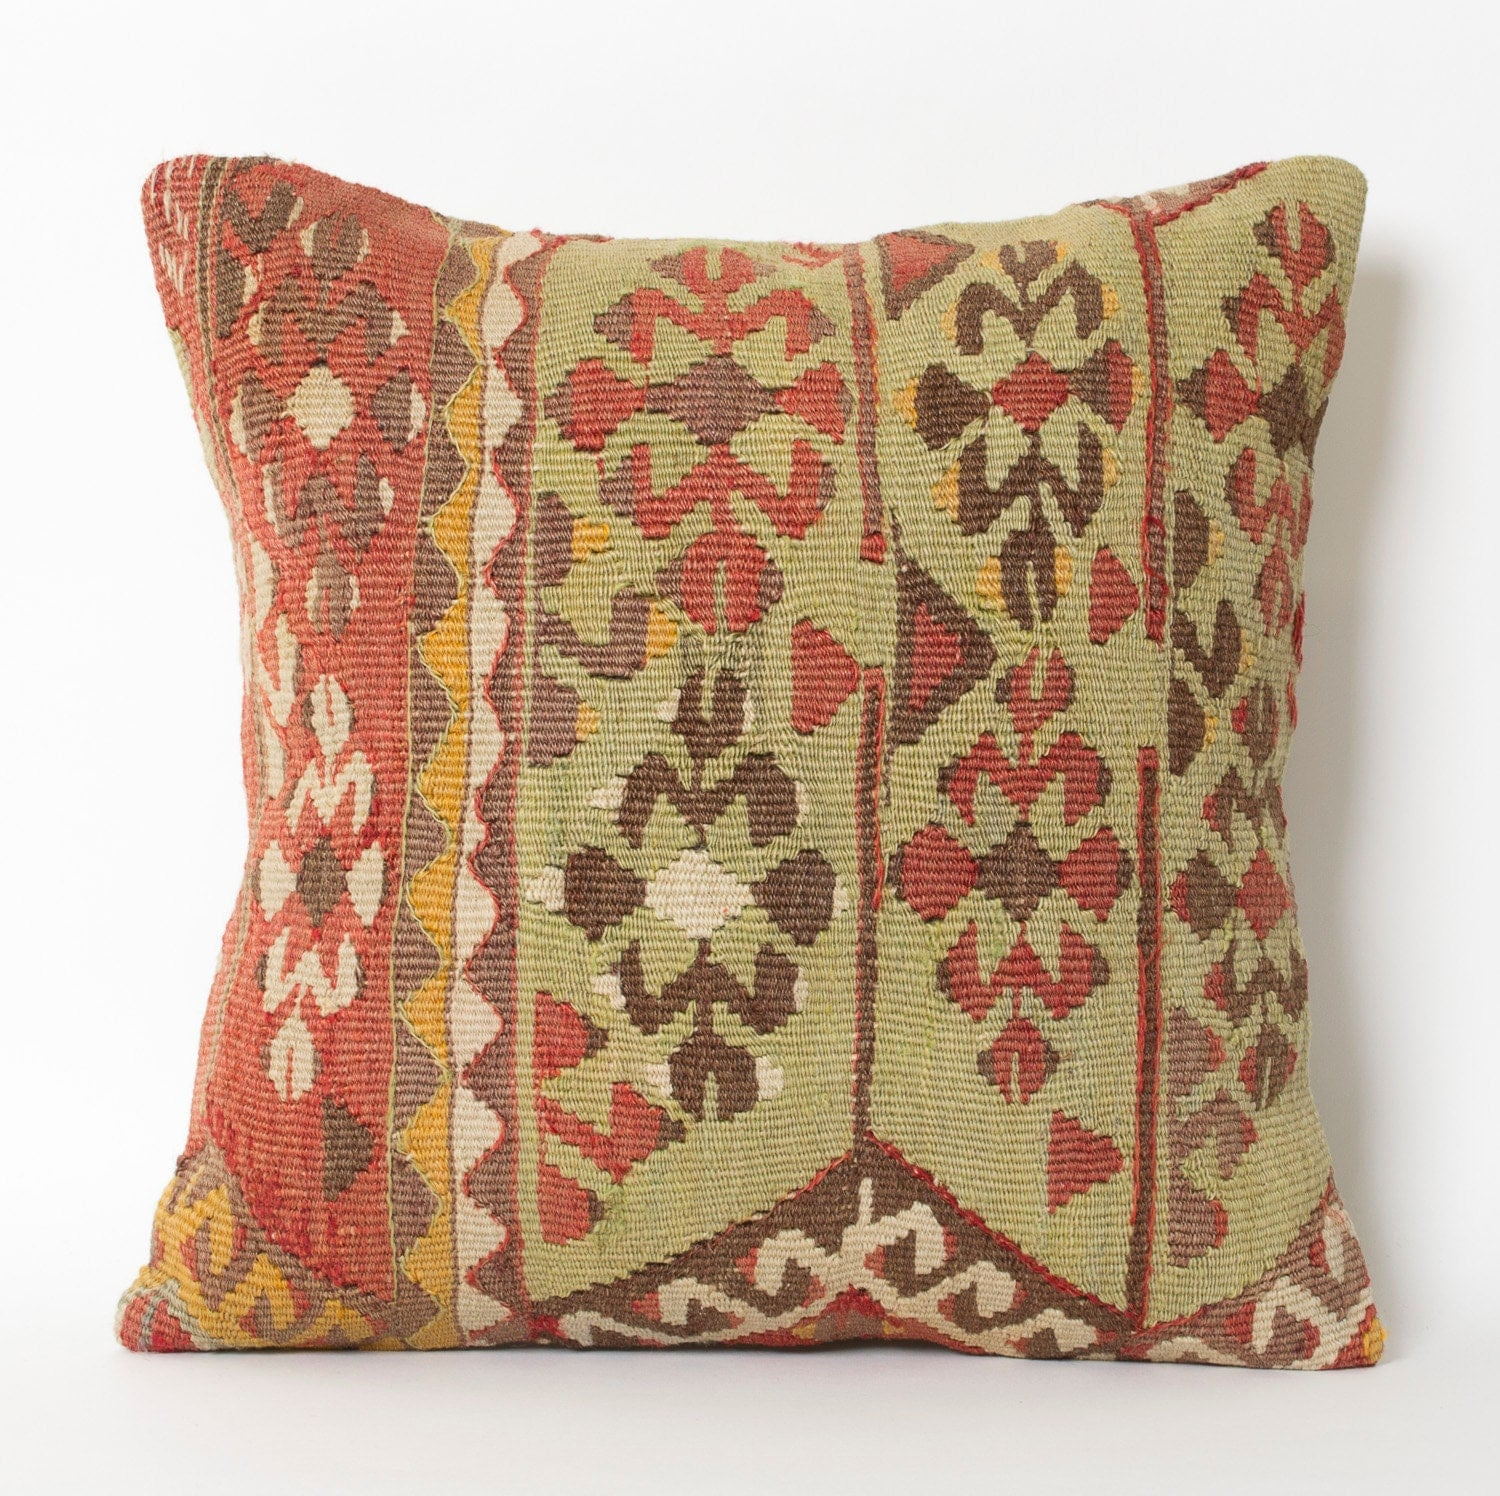 Southwestern Pillows And Throws : Southwestern pillow couch pillows pillow case aztec native